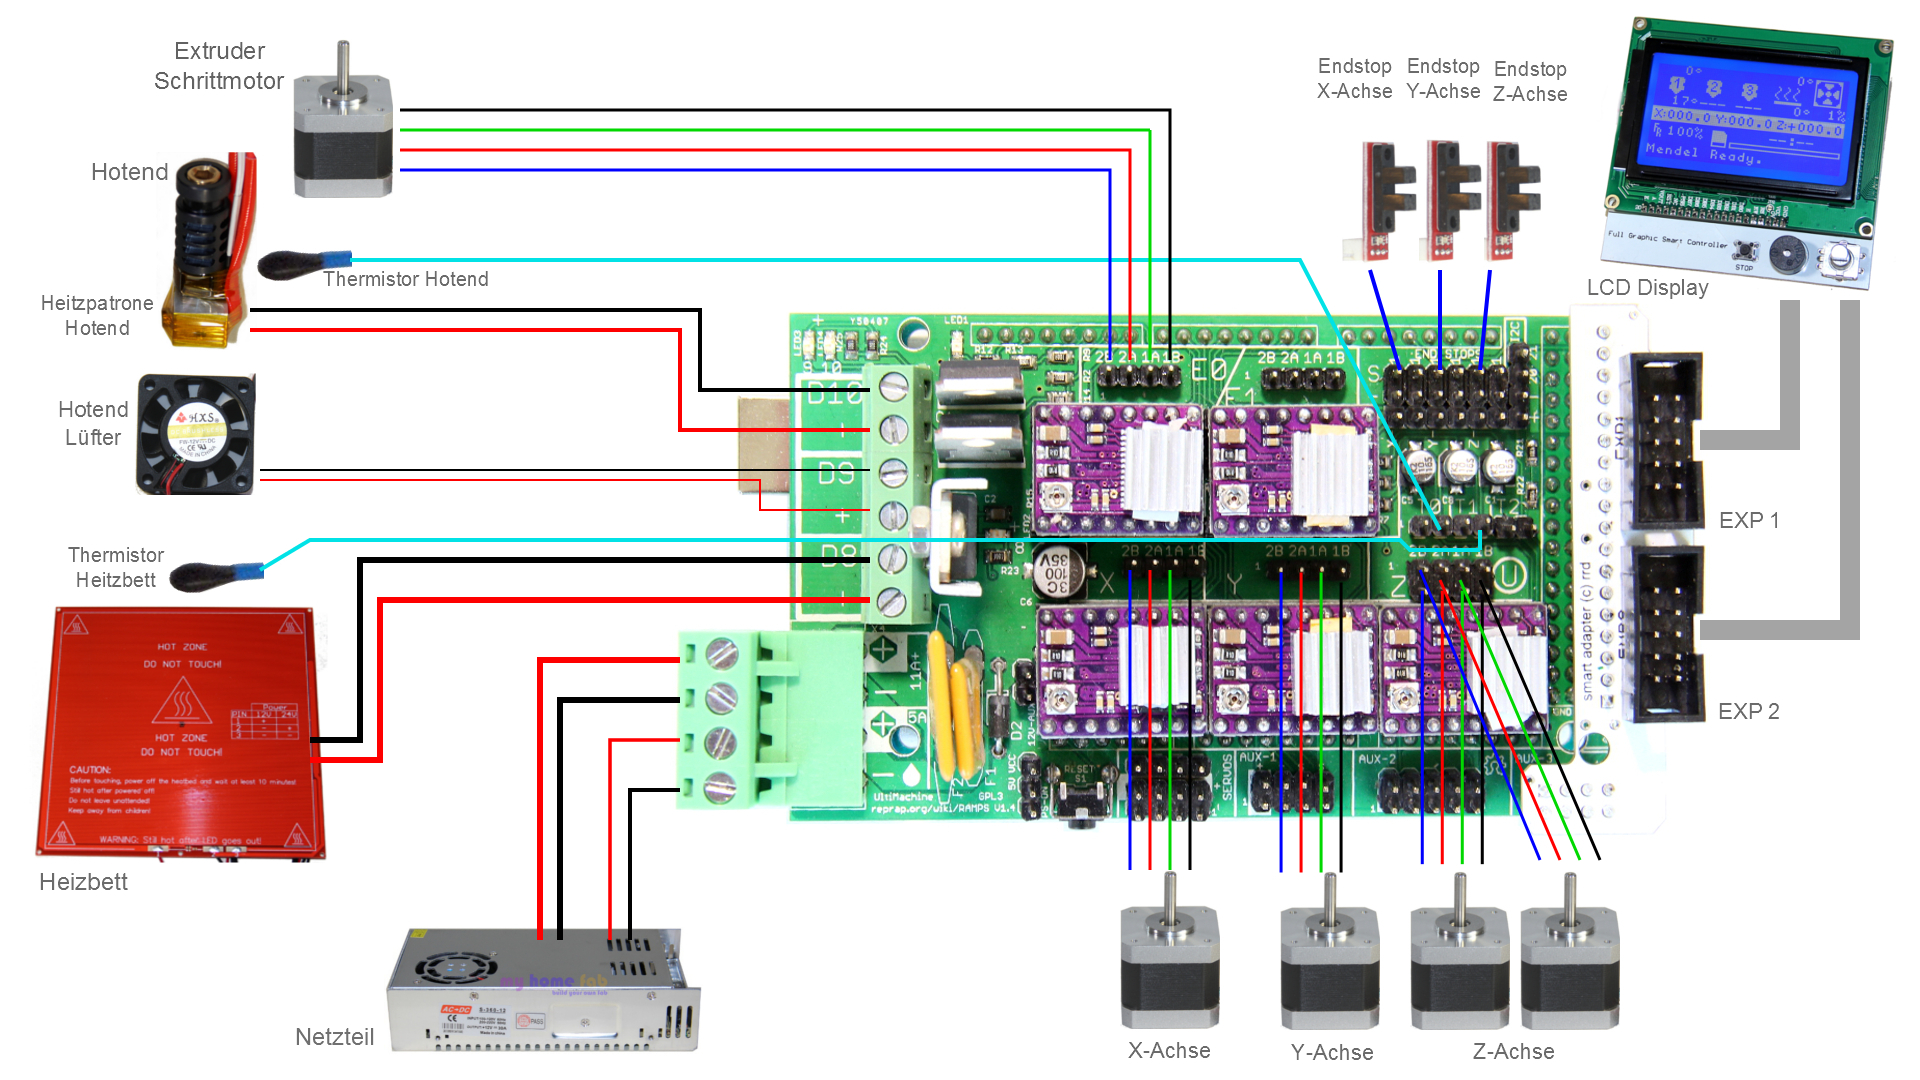 Description for Arduino 2560 with RAMPS 1.4 | Technical ... on